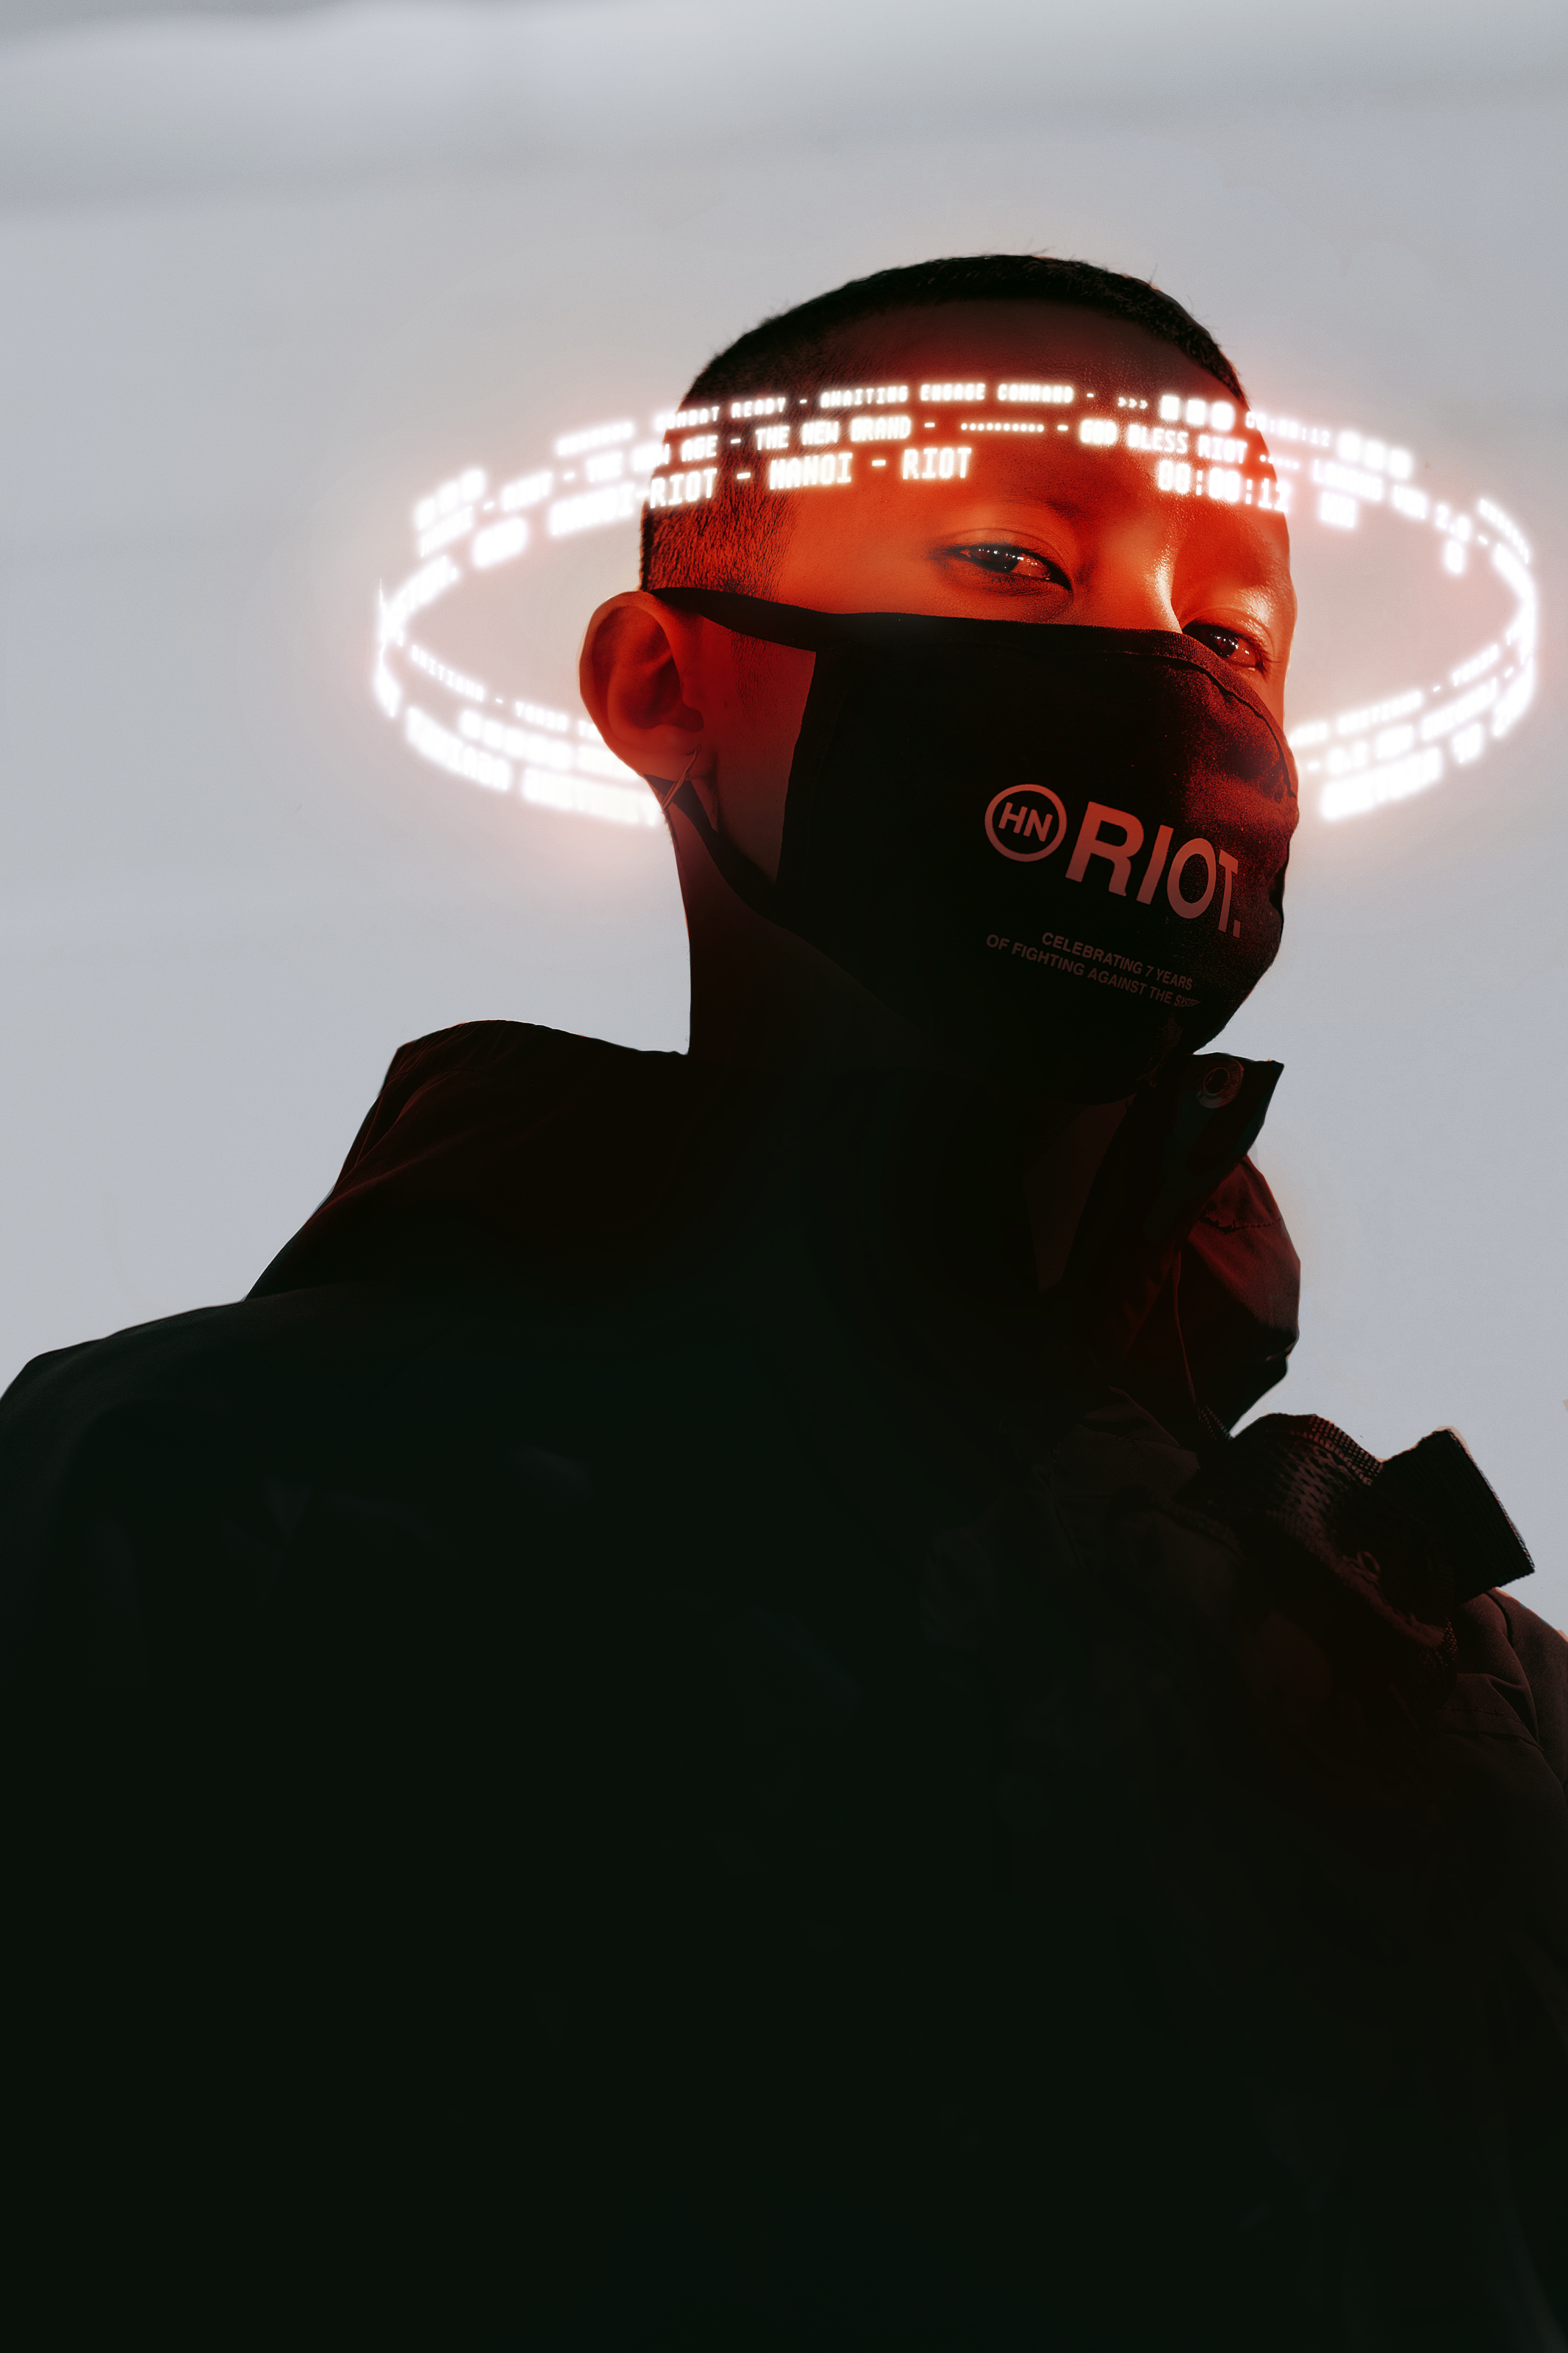 RIOT-RED-GLOW-Recovered.jpg